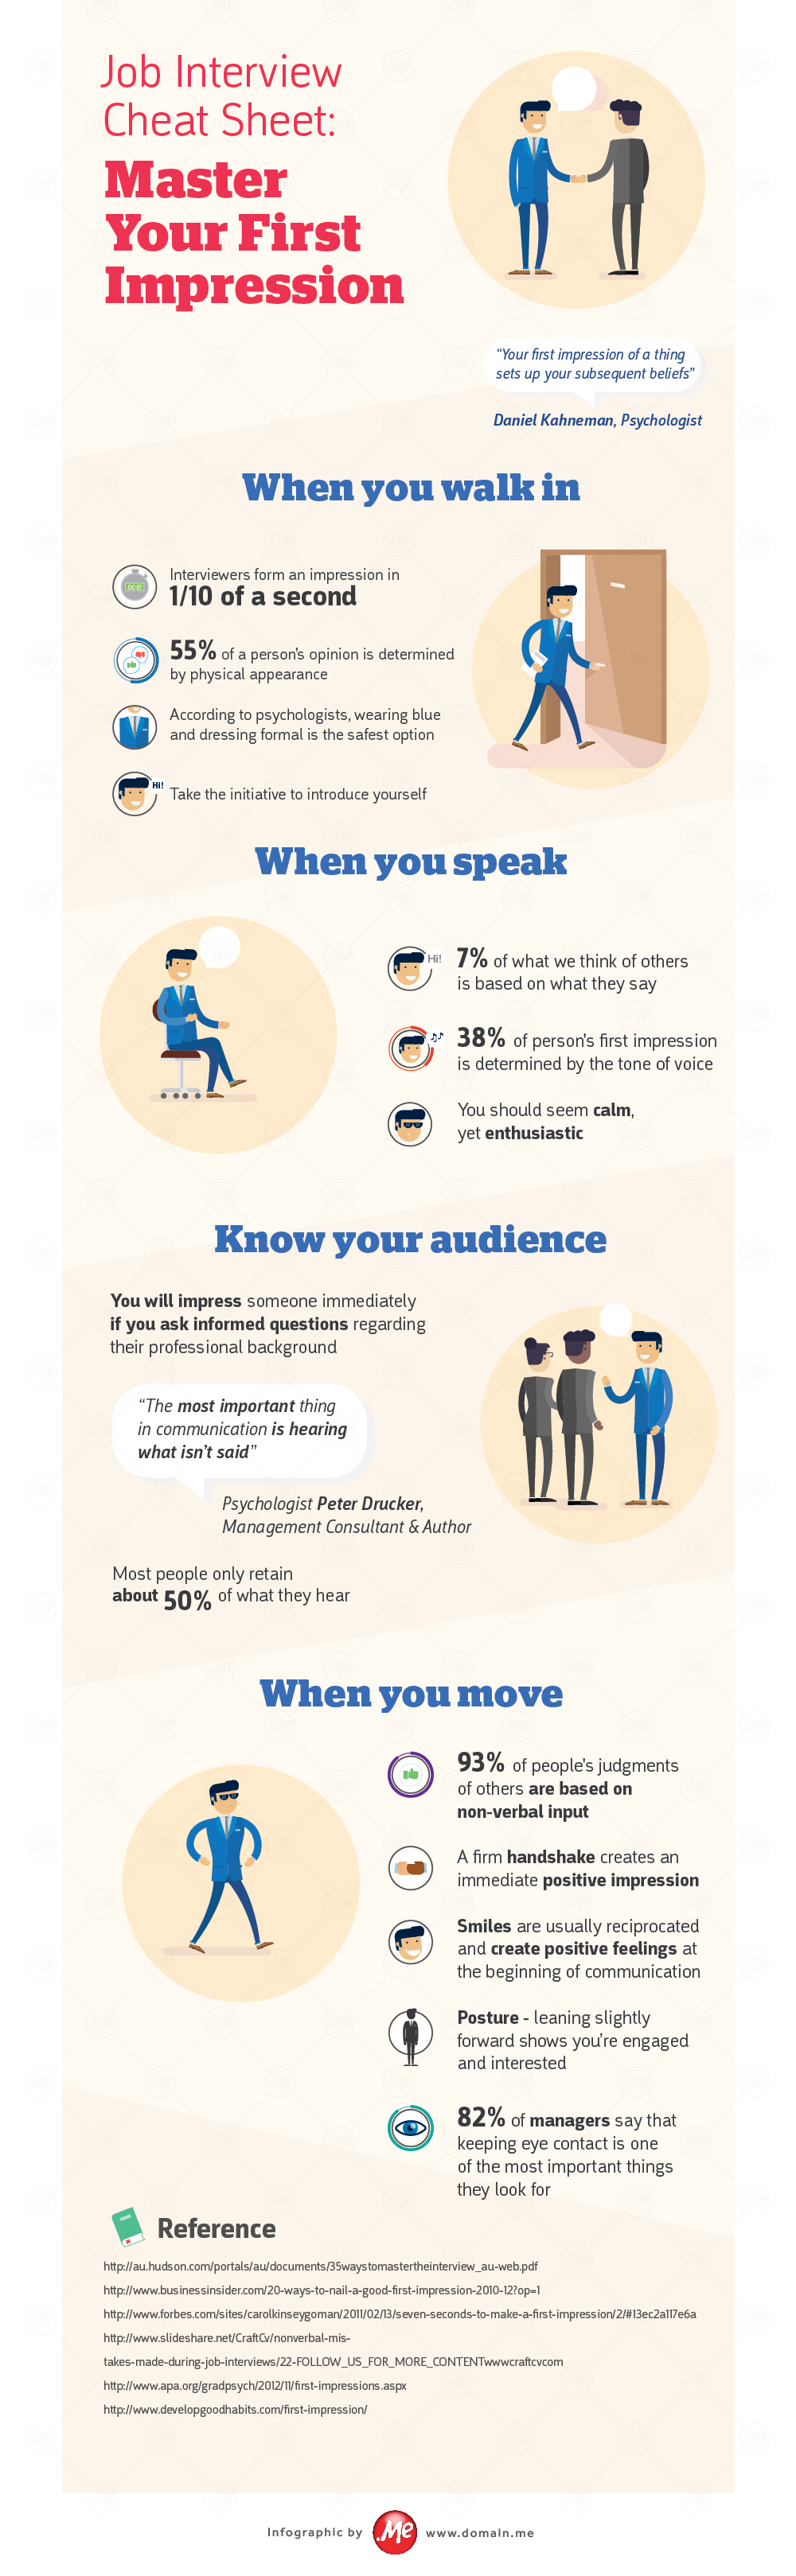 INFOGRAPHIC: Job Interview Cheat Sheet - Master Your First Impression